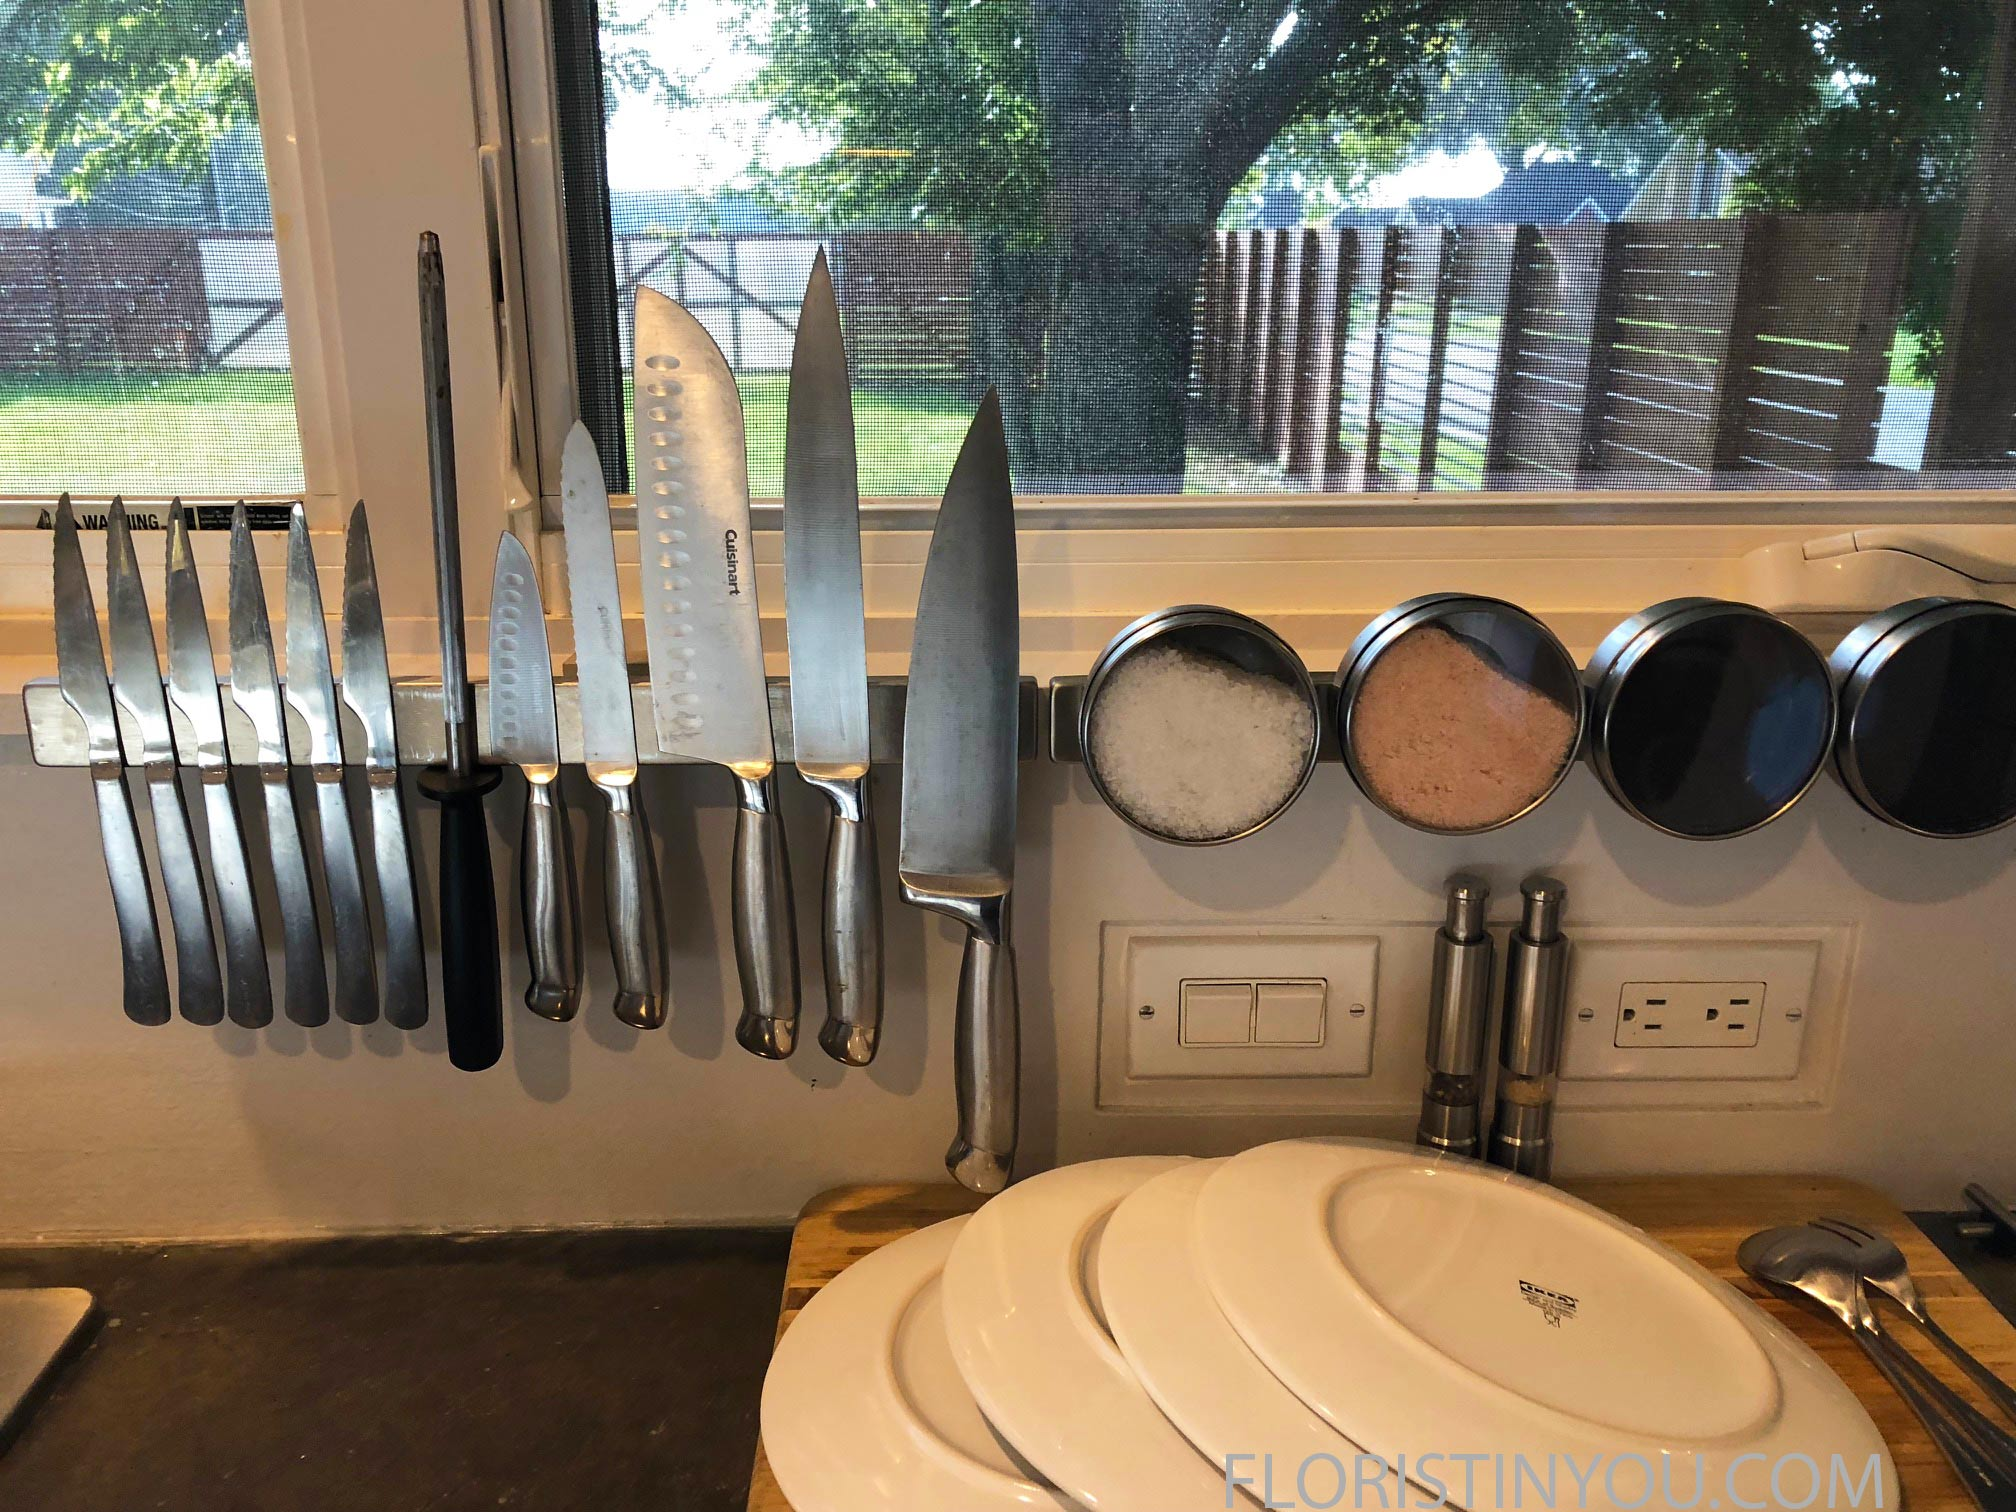 This is a magnetic knife rack which also houses different gourmet salts.